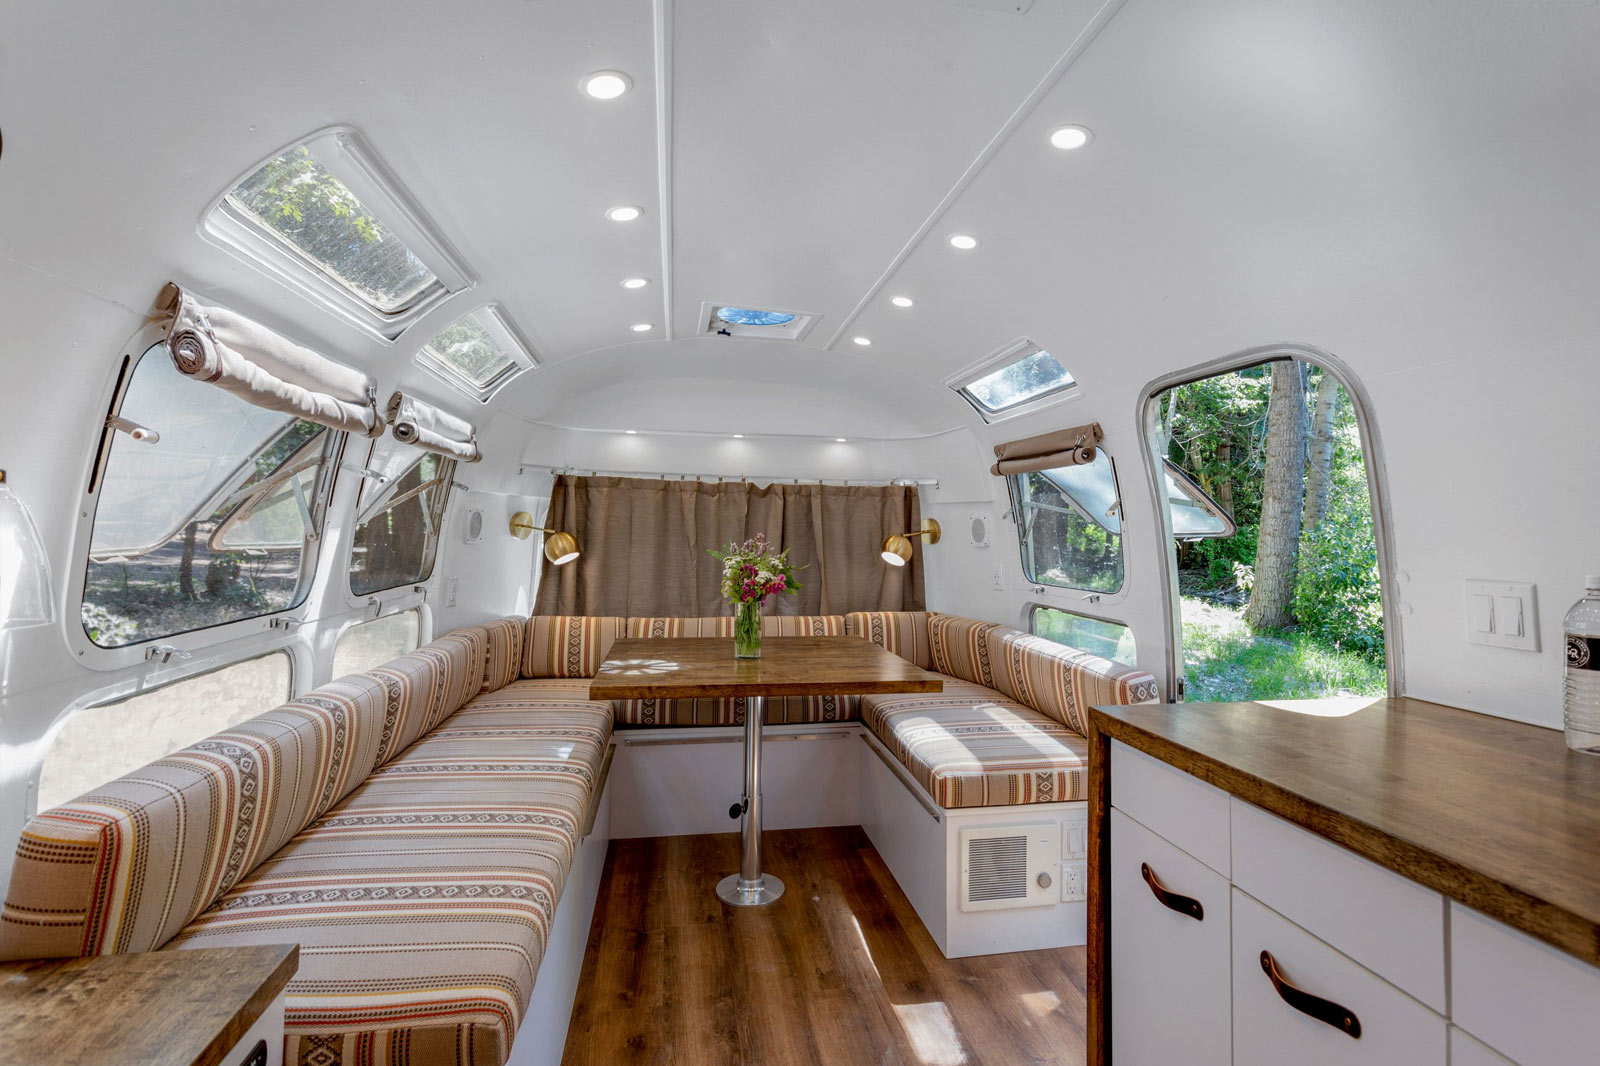 image of creekside airstream interior dining table and seating